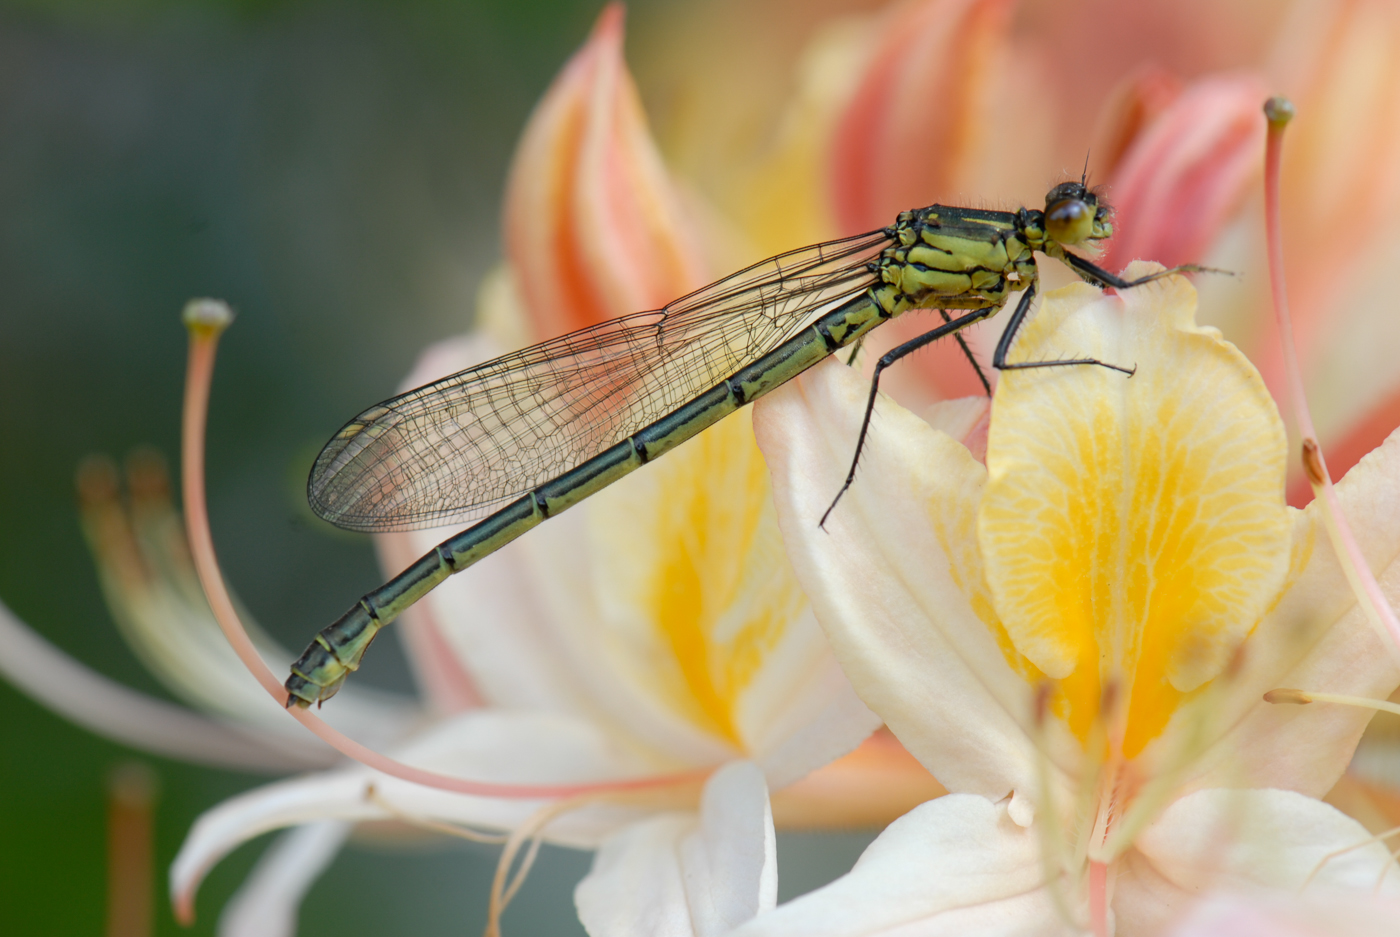 DRAGONFLY by Mohd Asif